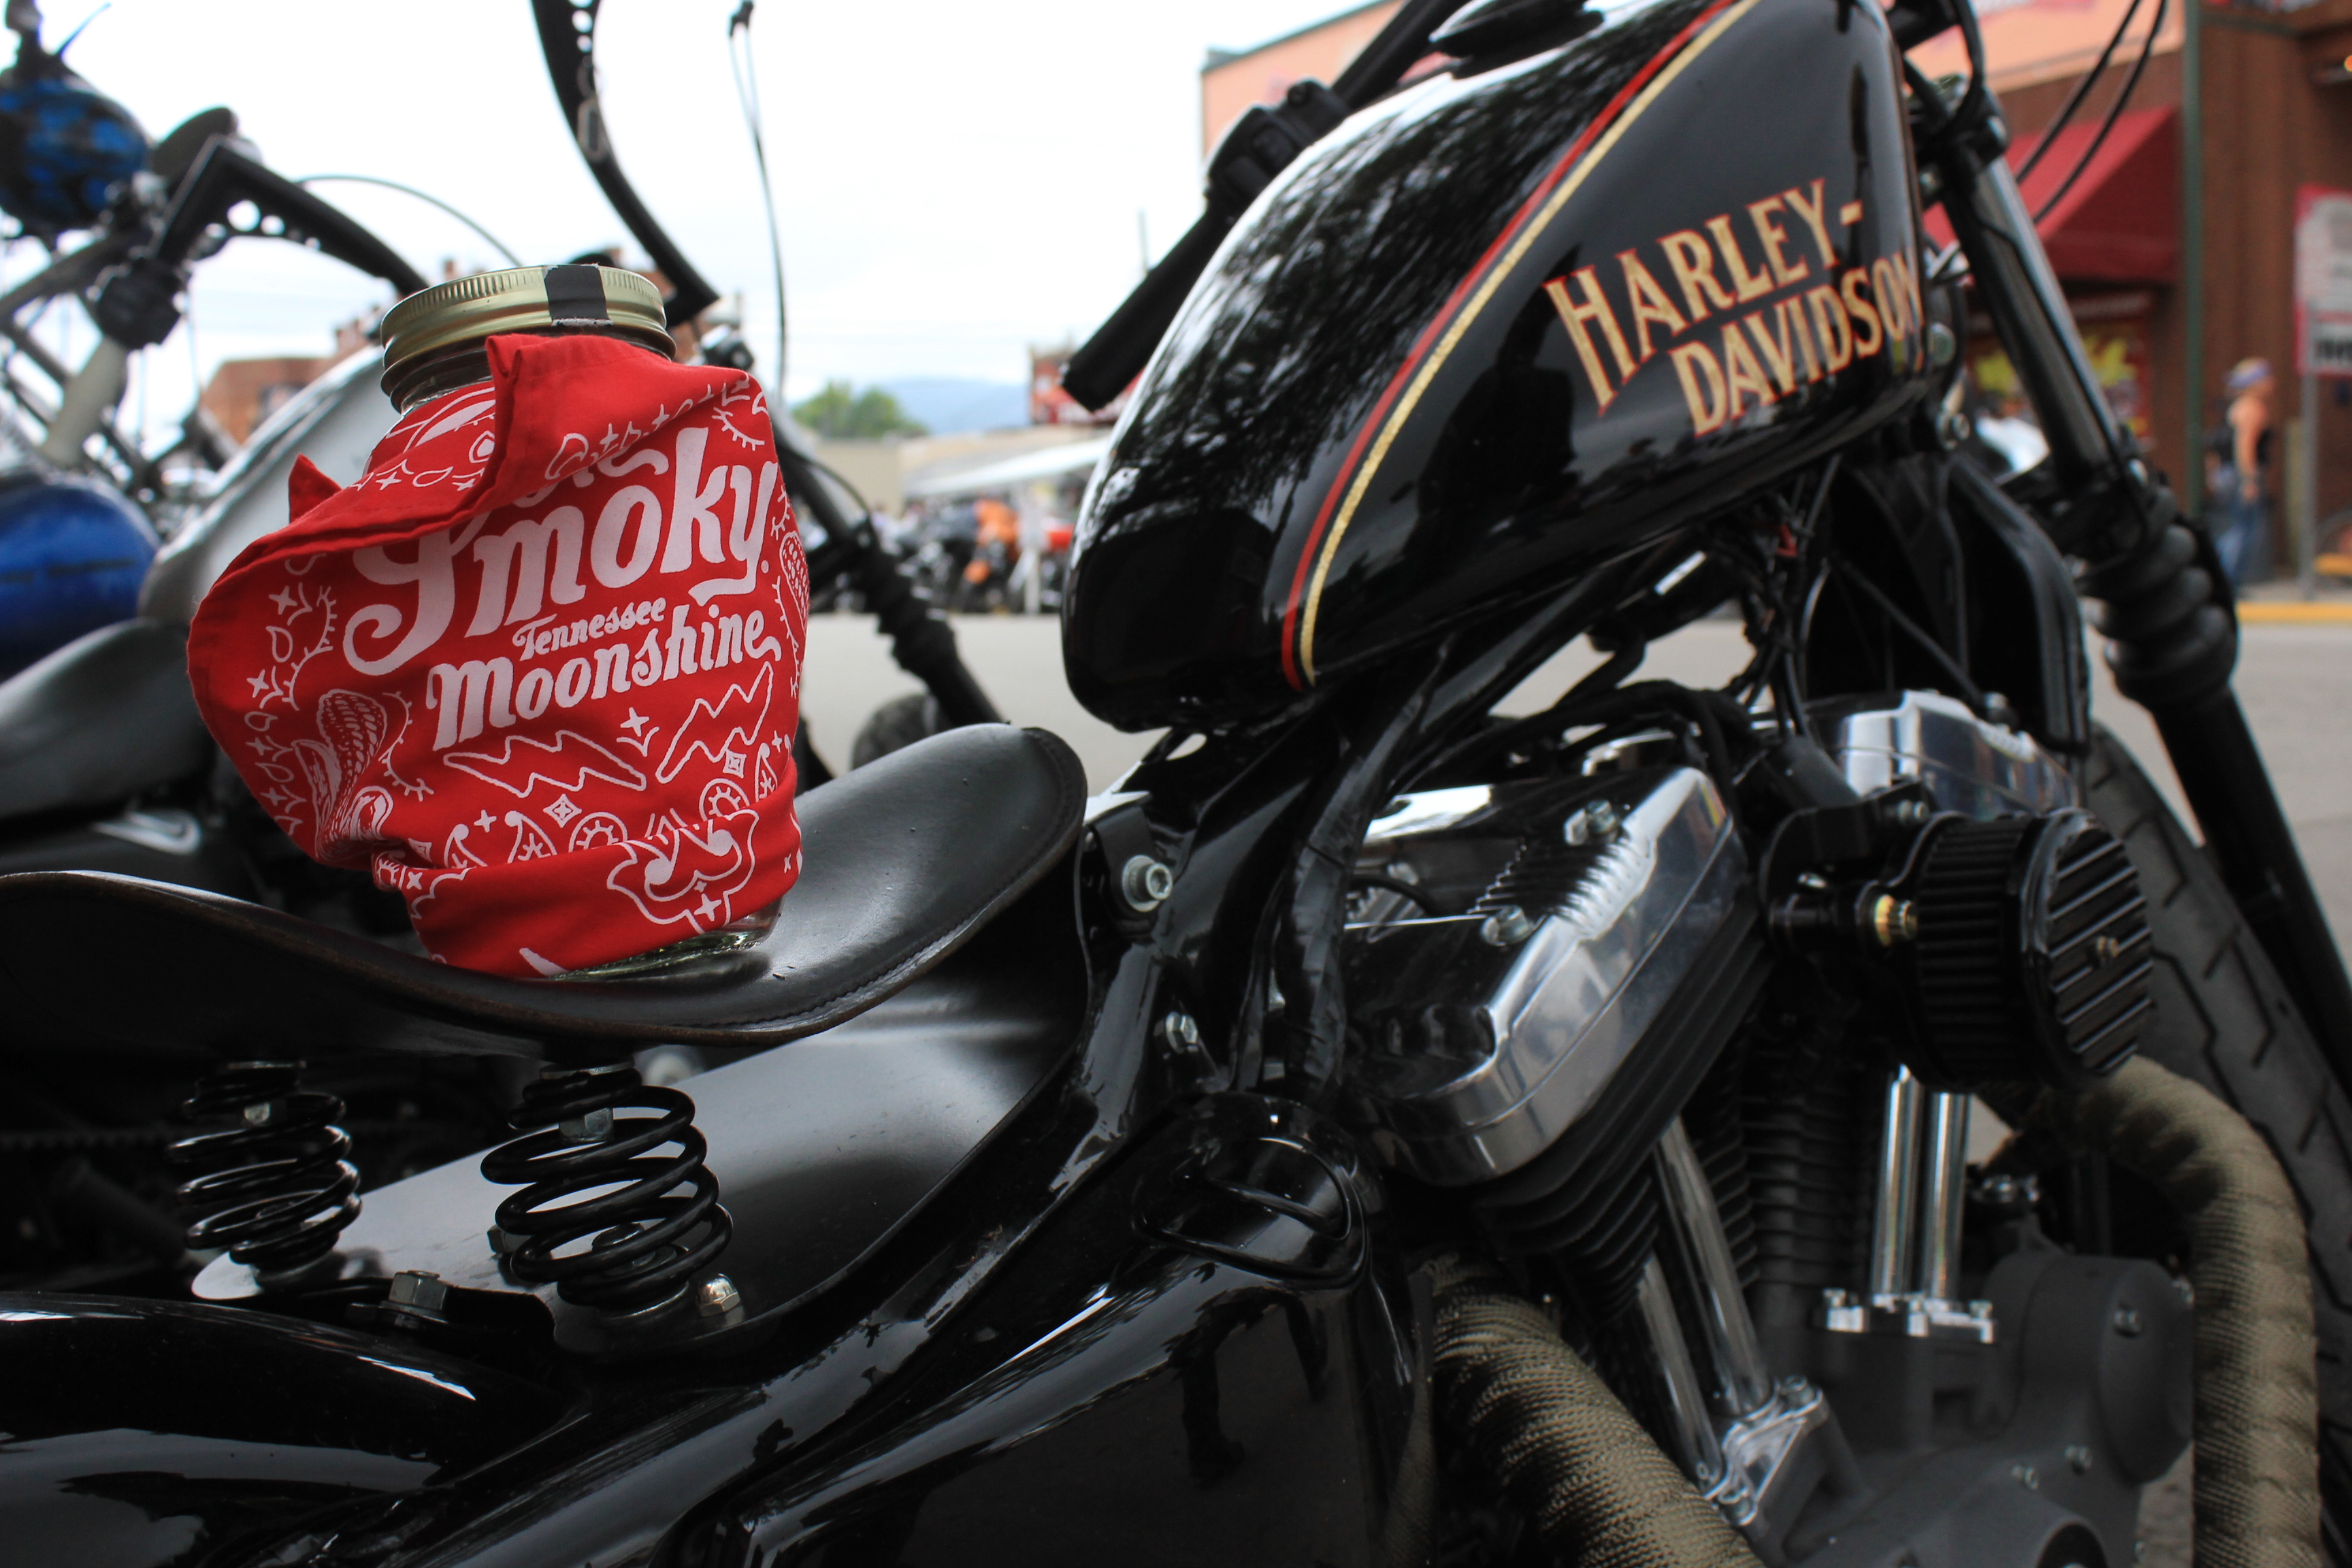 Sturgis Motorcycle Rally Dates Sturgis Motorcycle Rally 2015 Sturgis ...